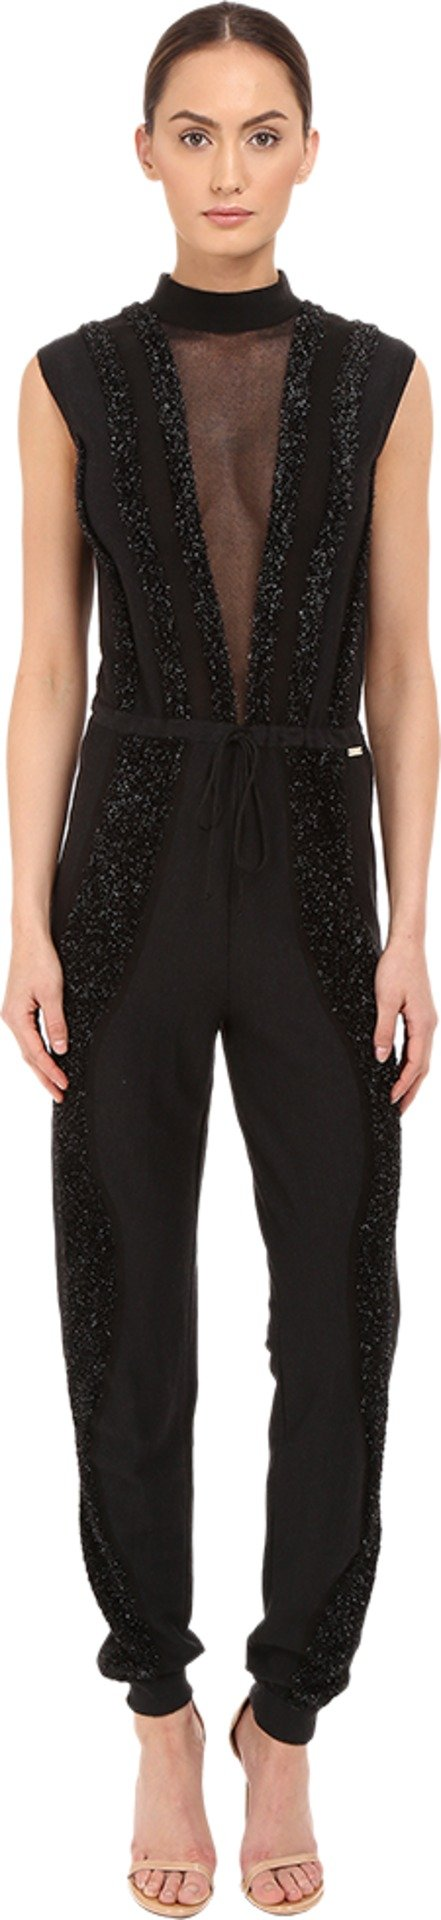 Just Cavalli Women's Knit Jumpsuit With Sheer Panel and Lurex Trim, Black, LG